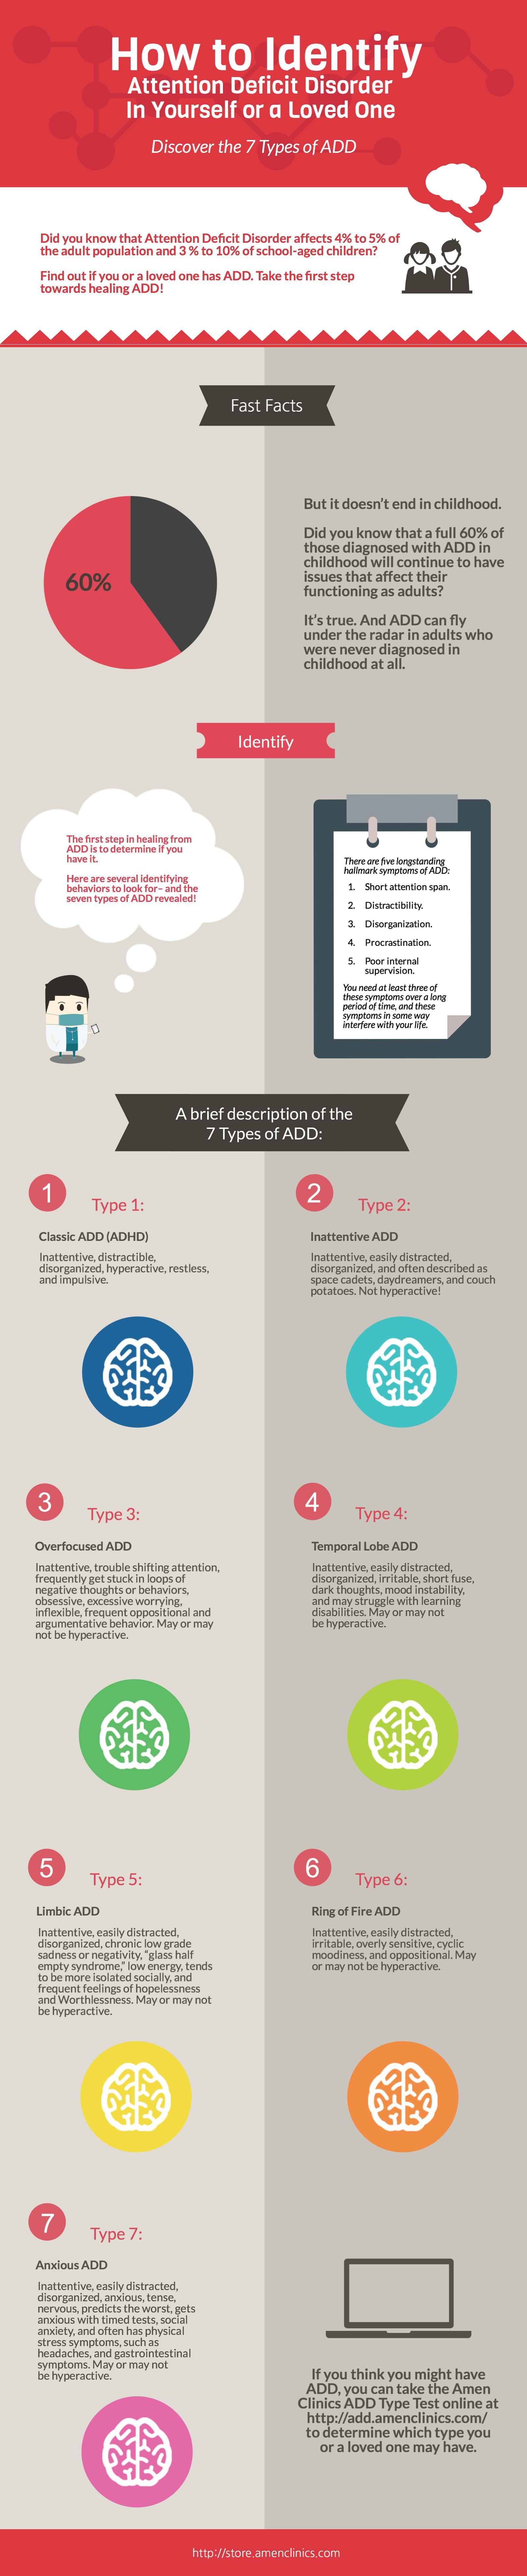 Learn About the 7 Types of ADD